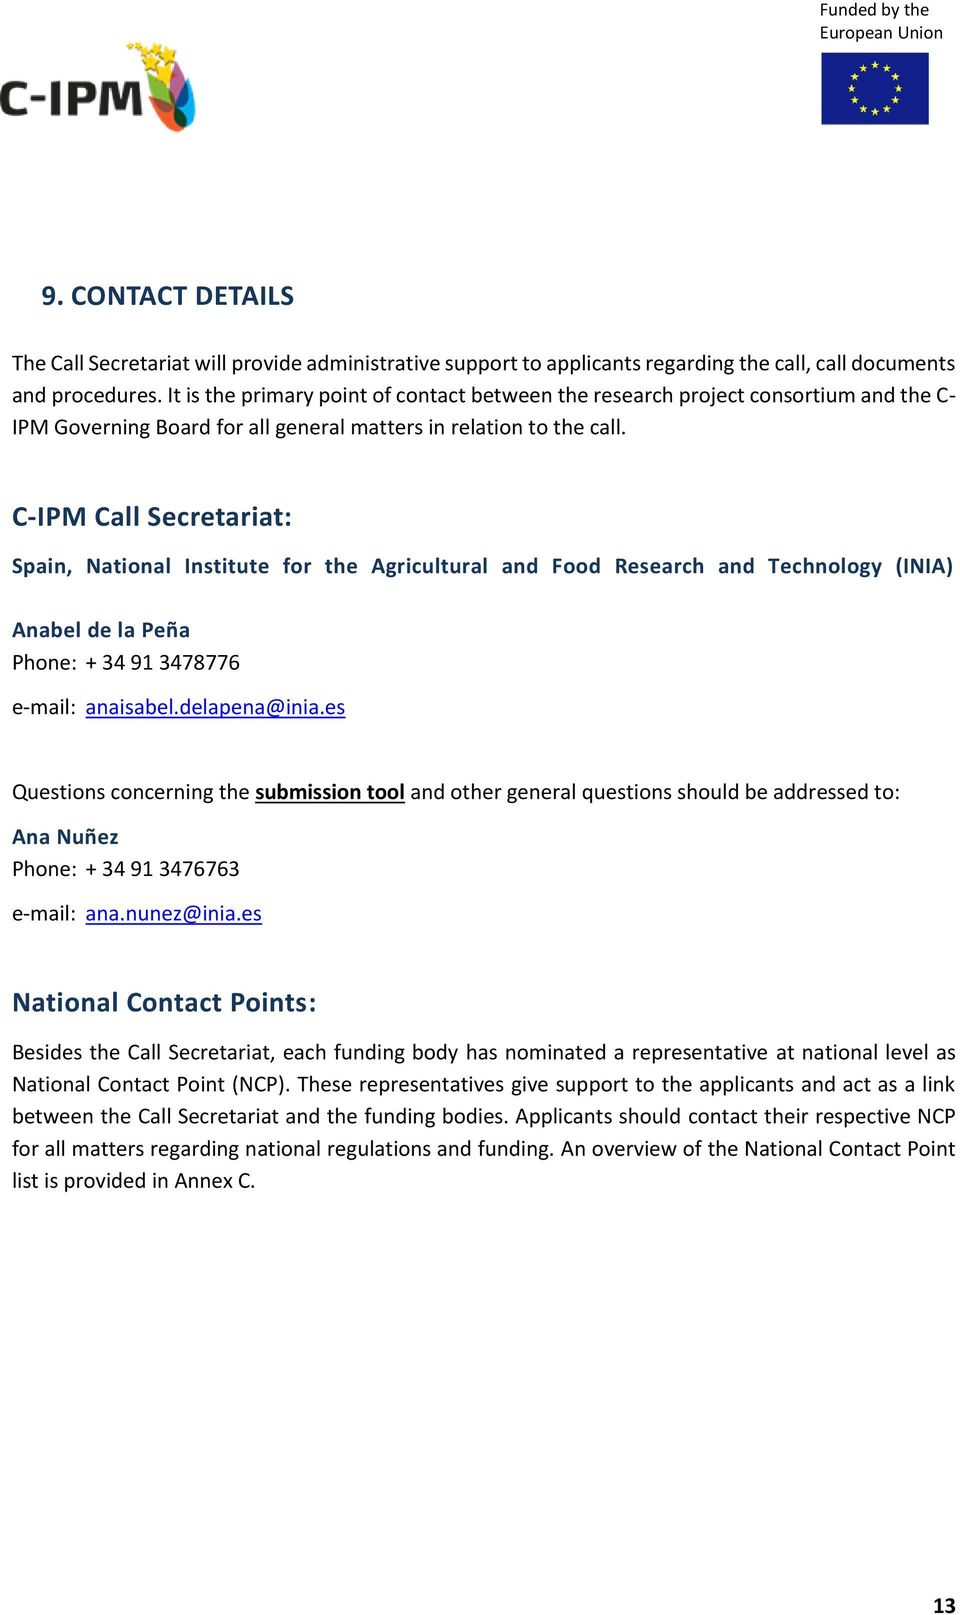 C-IPM Call Secretariat: Spain, National Institute for the Agricultural and Food Research and Technology (INIA) Anabel de la Peña Phone: + 34 91 3478776 e-mail: anaisabel.delapena@inia.